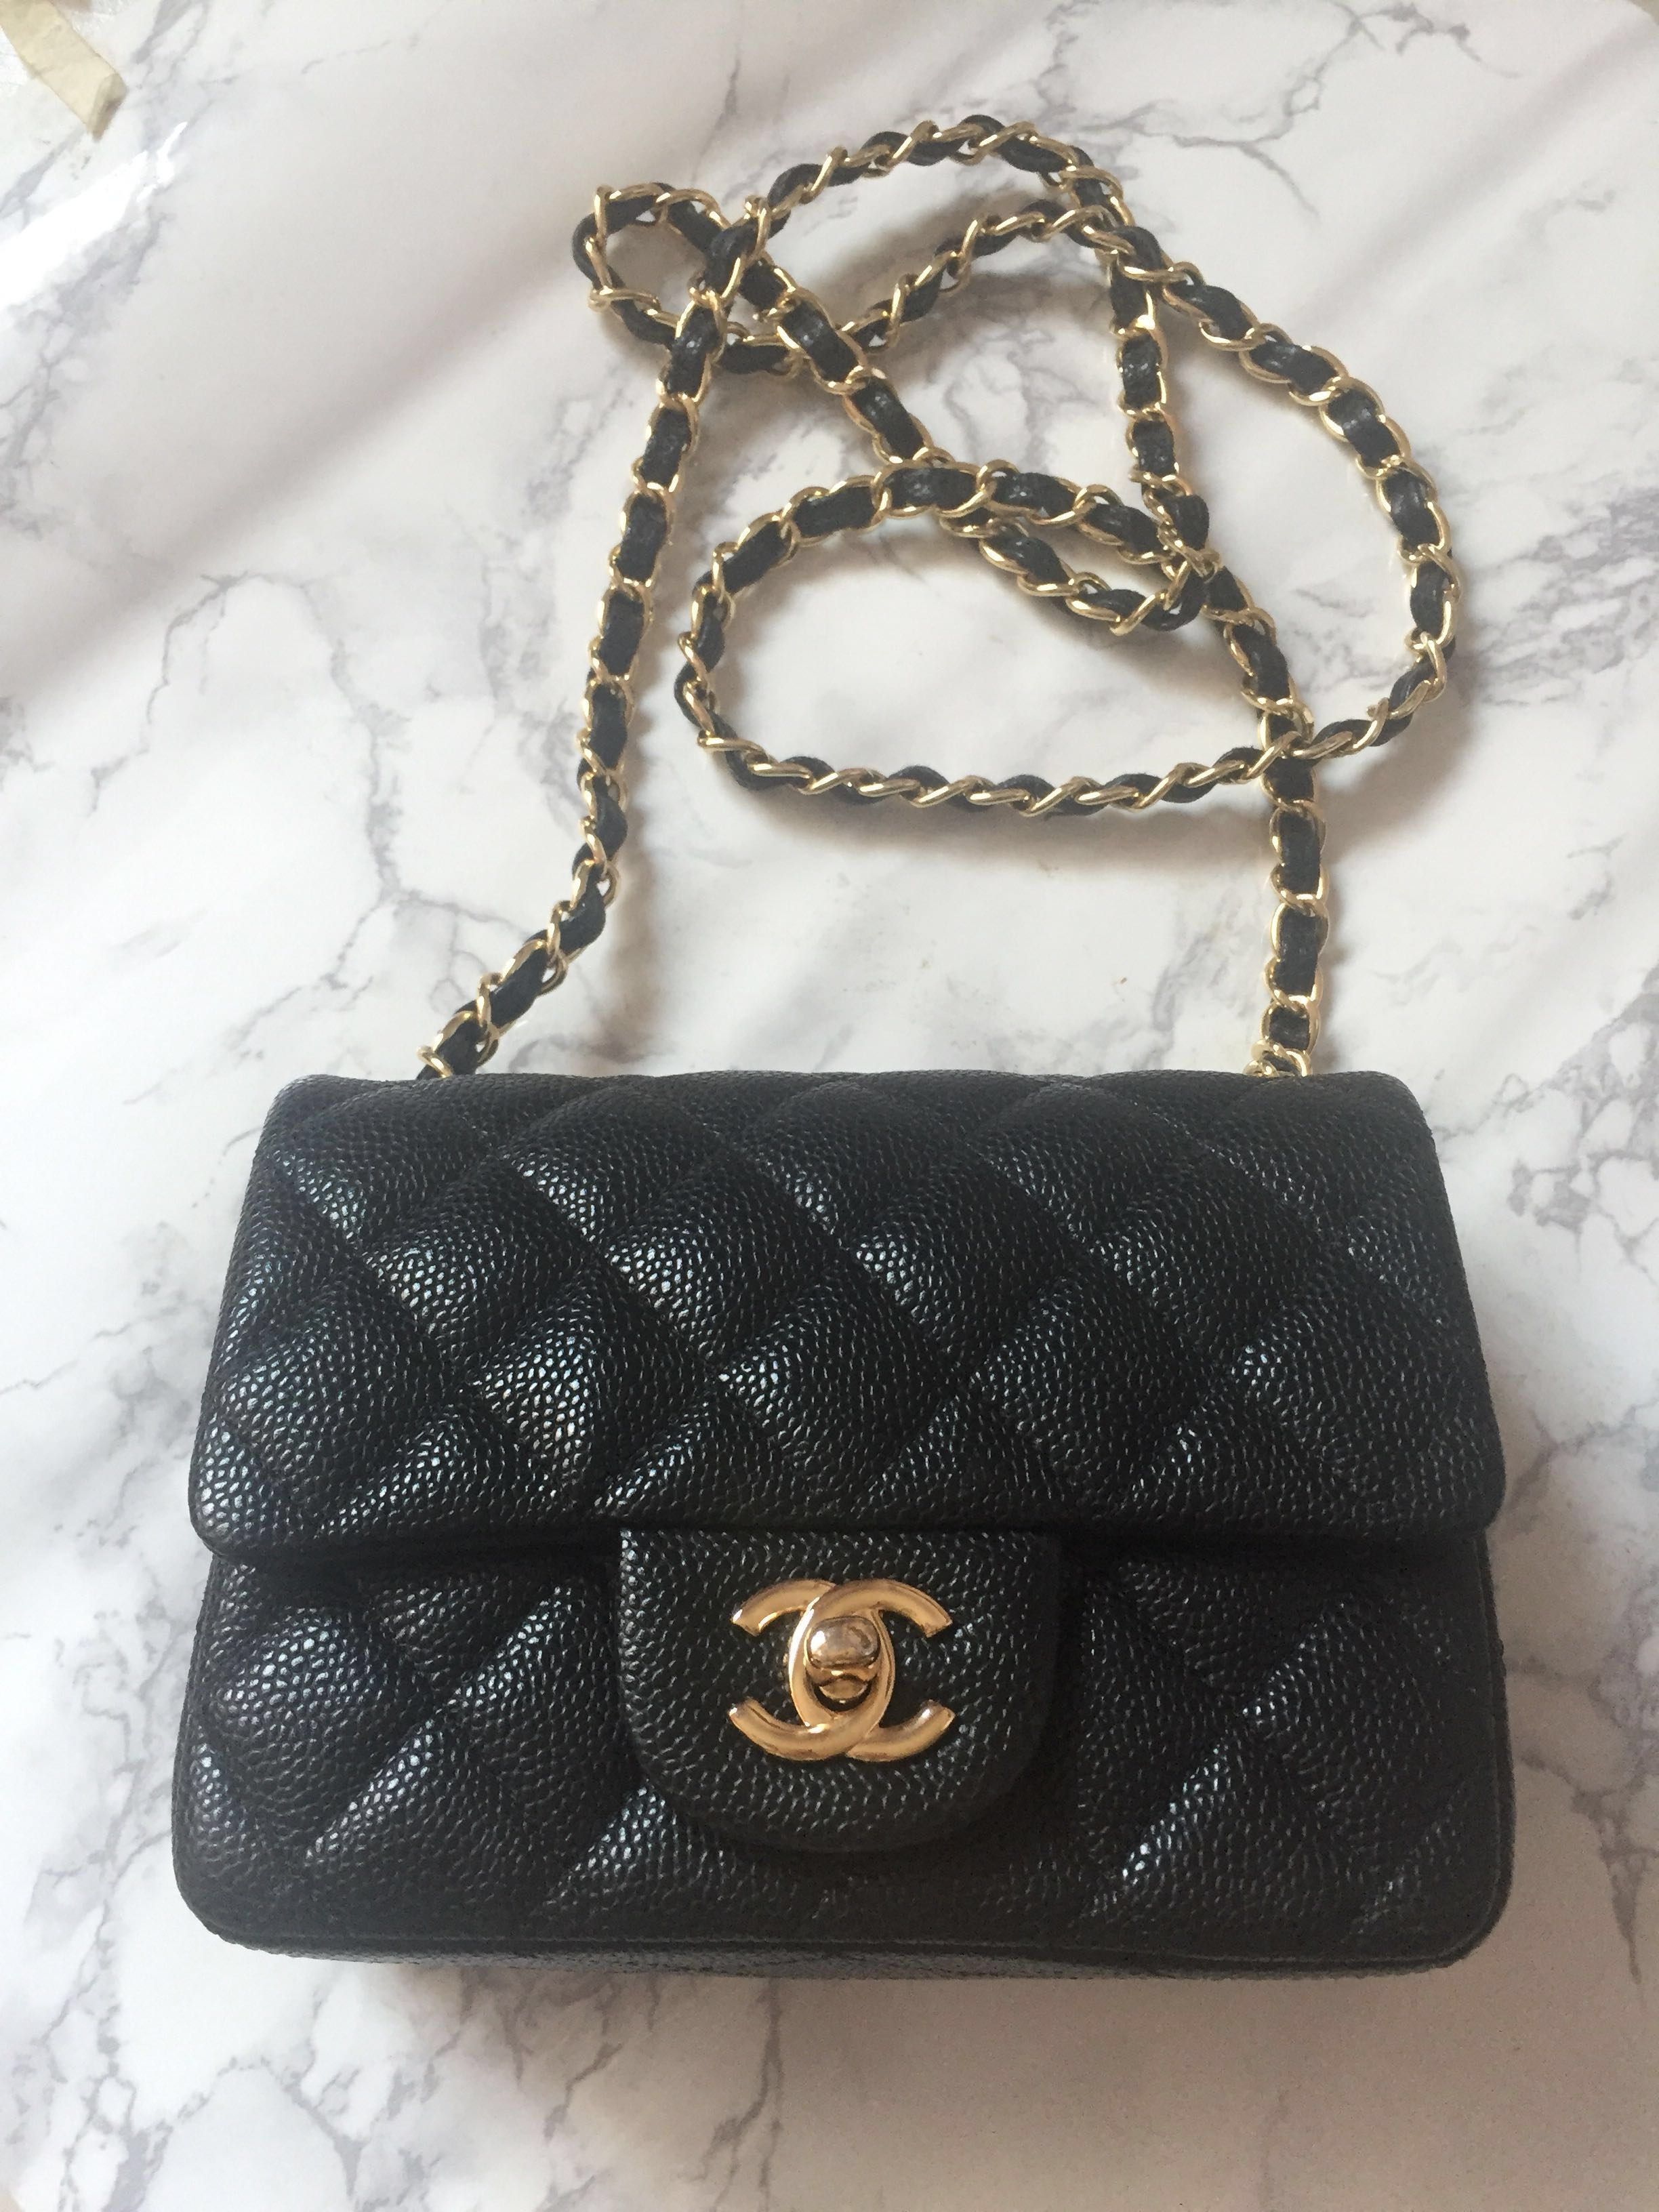 01e7a37c7e524b (Item not available) Chanel Mini Square Classic Flap Bag, Luxury, Bags &  Wallets, Sling Bags on Carousell